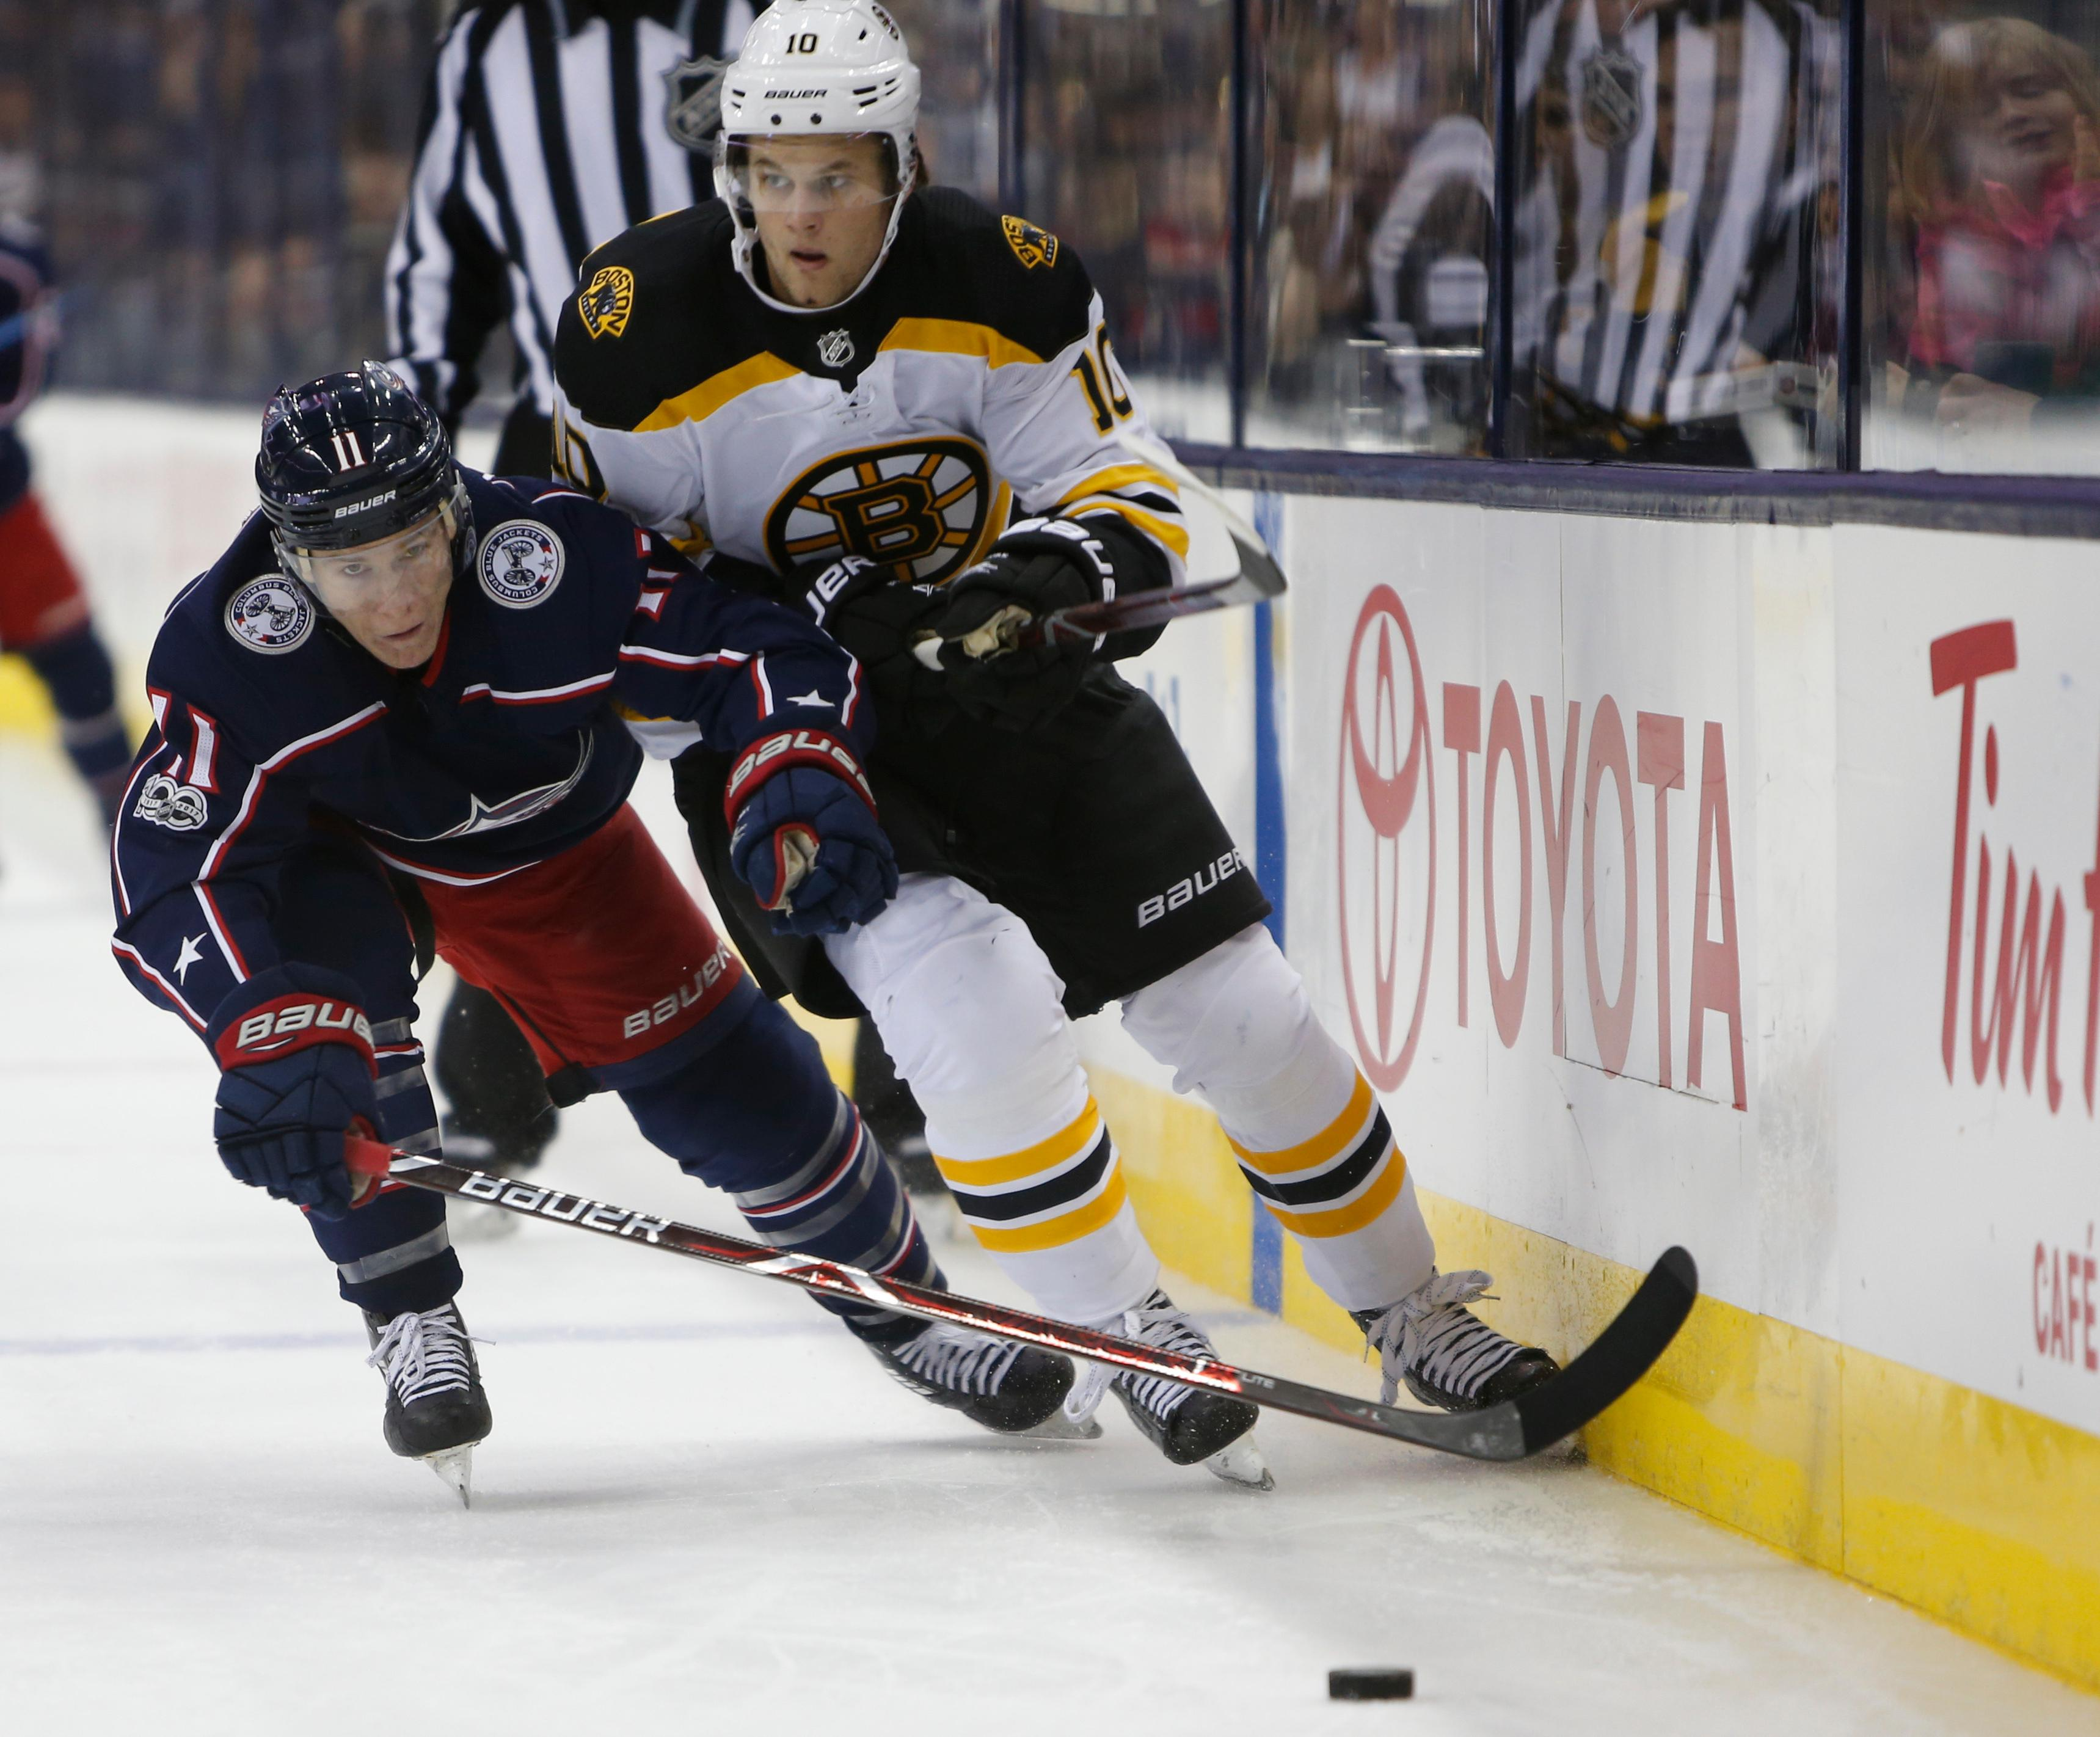 Columbus Blue Jackets' Matt Calvert, left, carries the puck past Boston Bruins' Anders Bjork, right, during the second period of an NHL hockey game Monday, Oct. 30, 2017, in Columbus, Ohio. (AP Photo/Jay LaPrete)